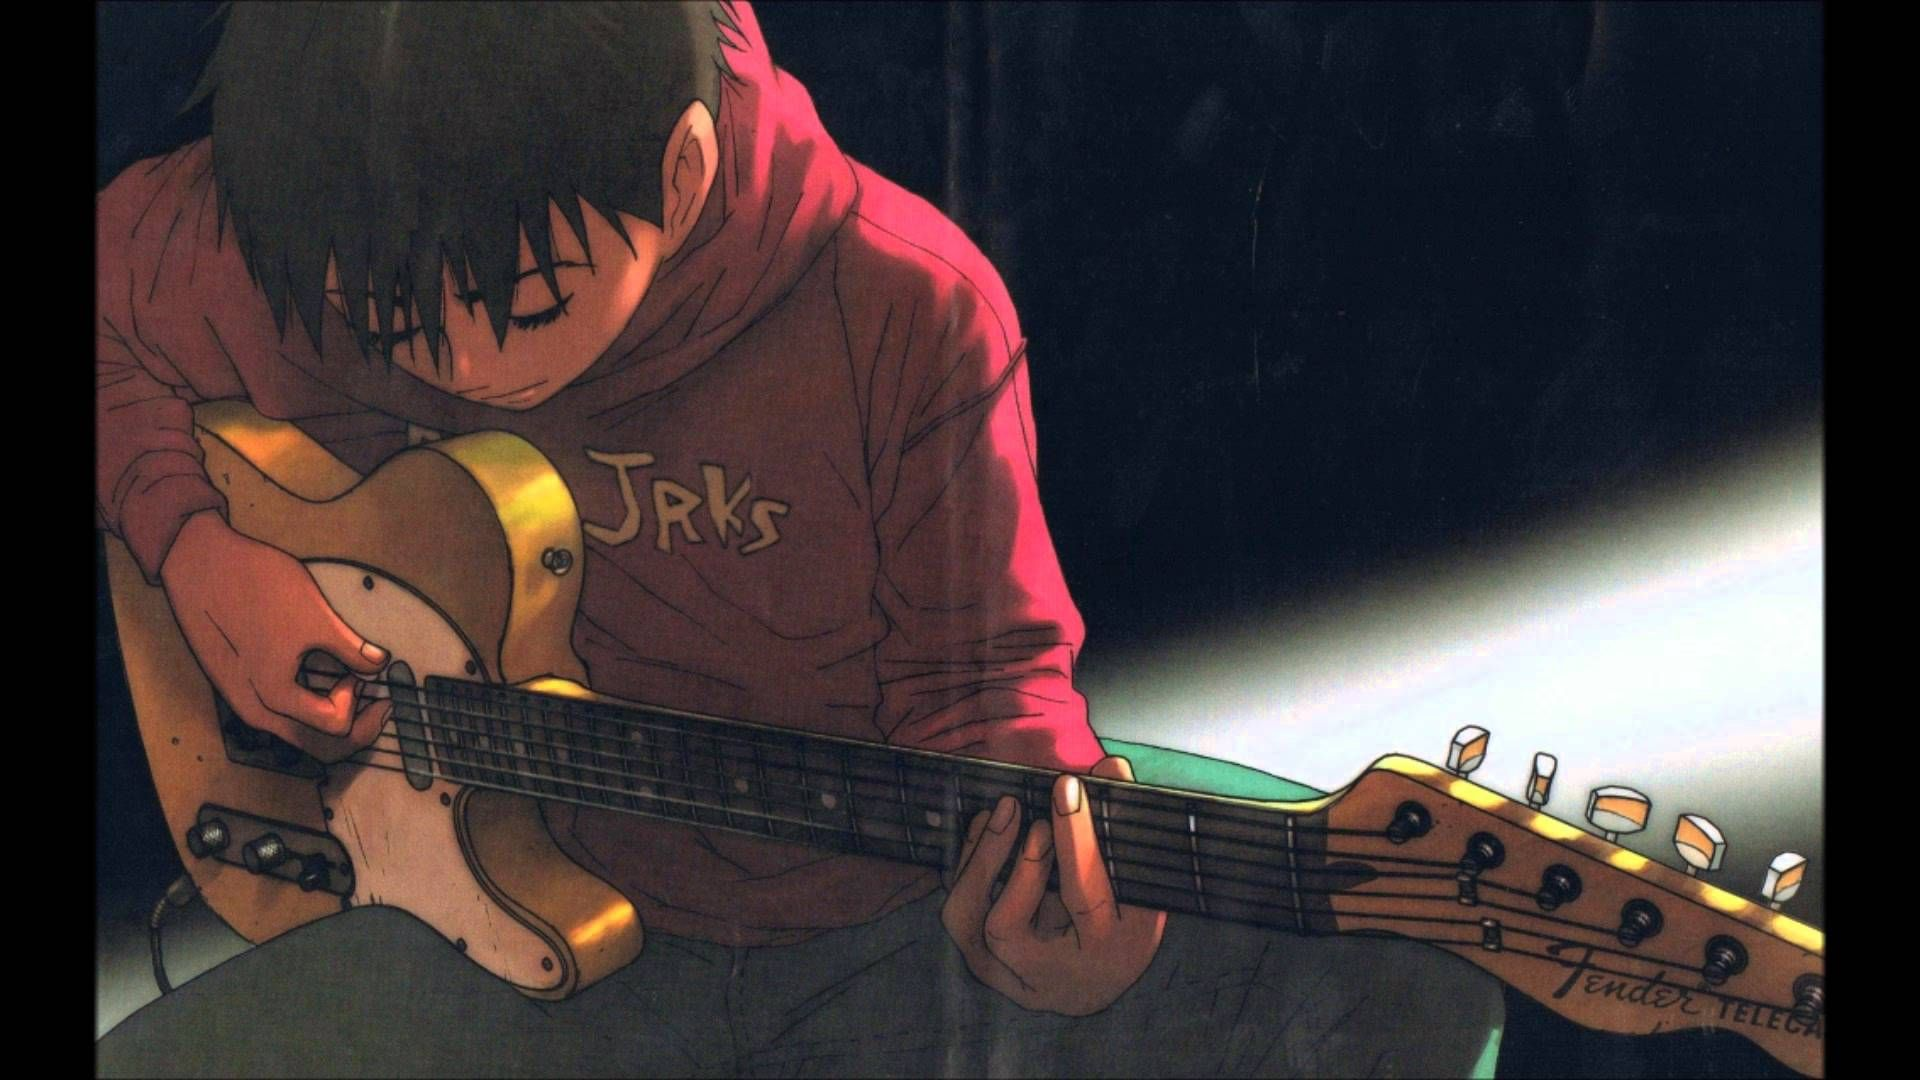 Pin By Max Batong On Ed S Thing Guitar Illustration Cats Art Drawing Anime